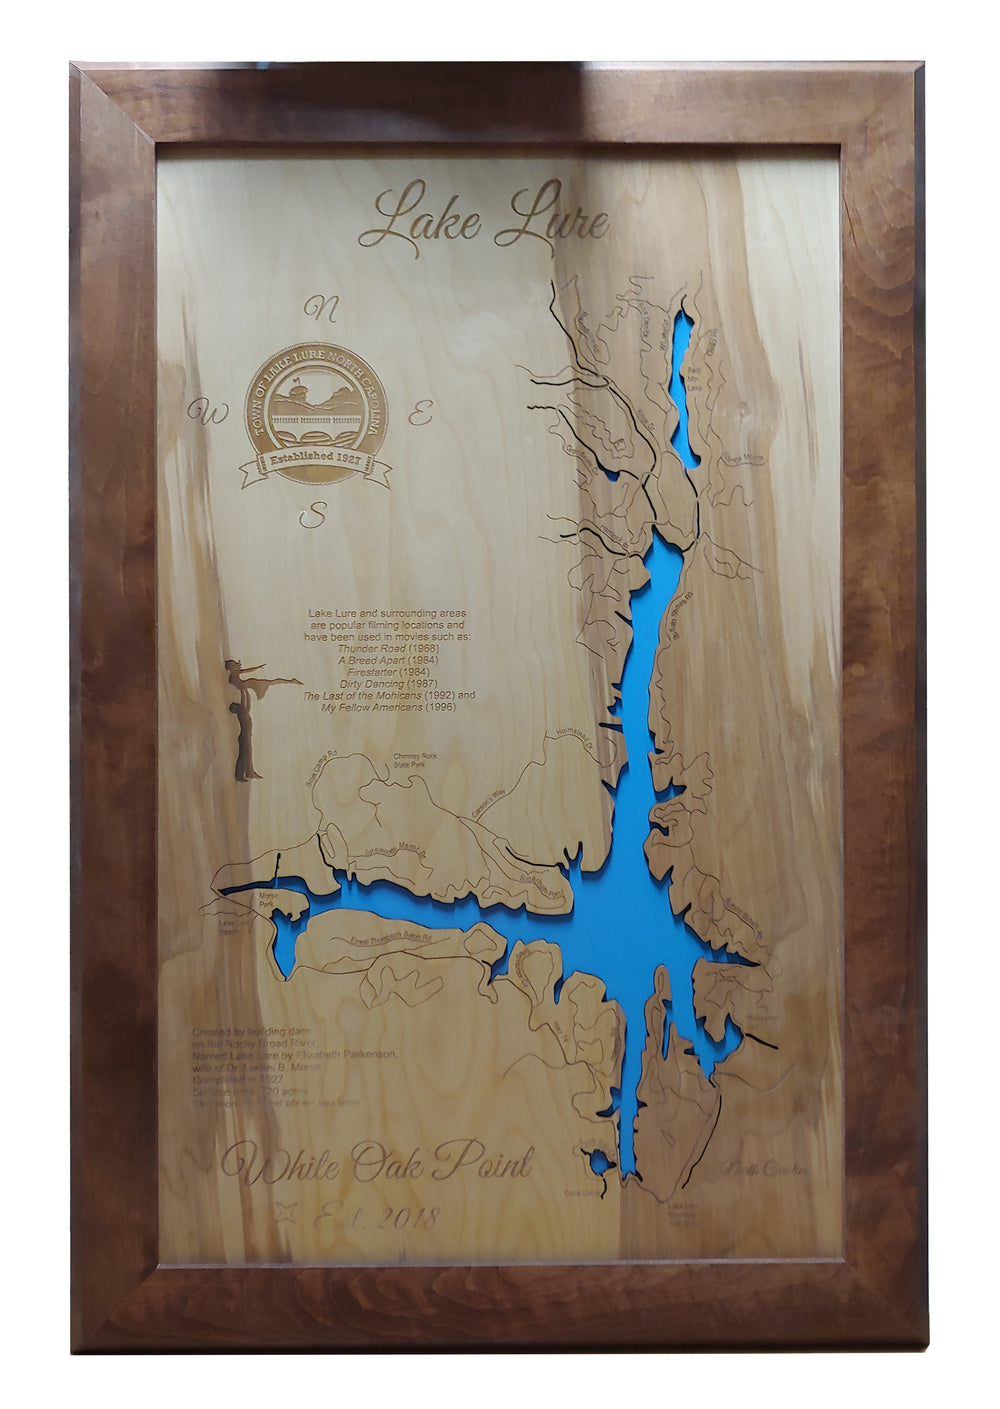 Lake Lure, NC - Laser Cut Wood Map